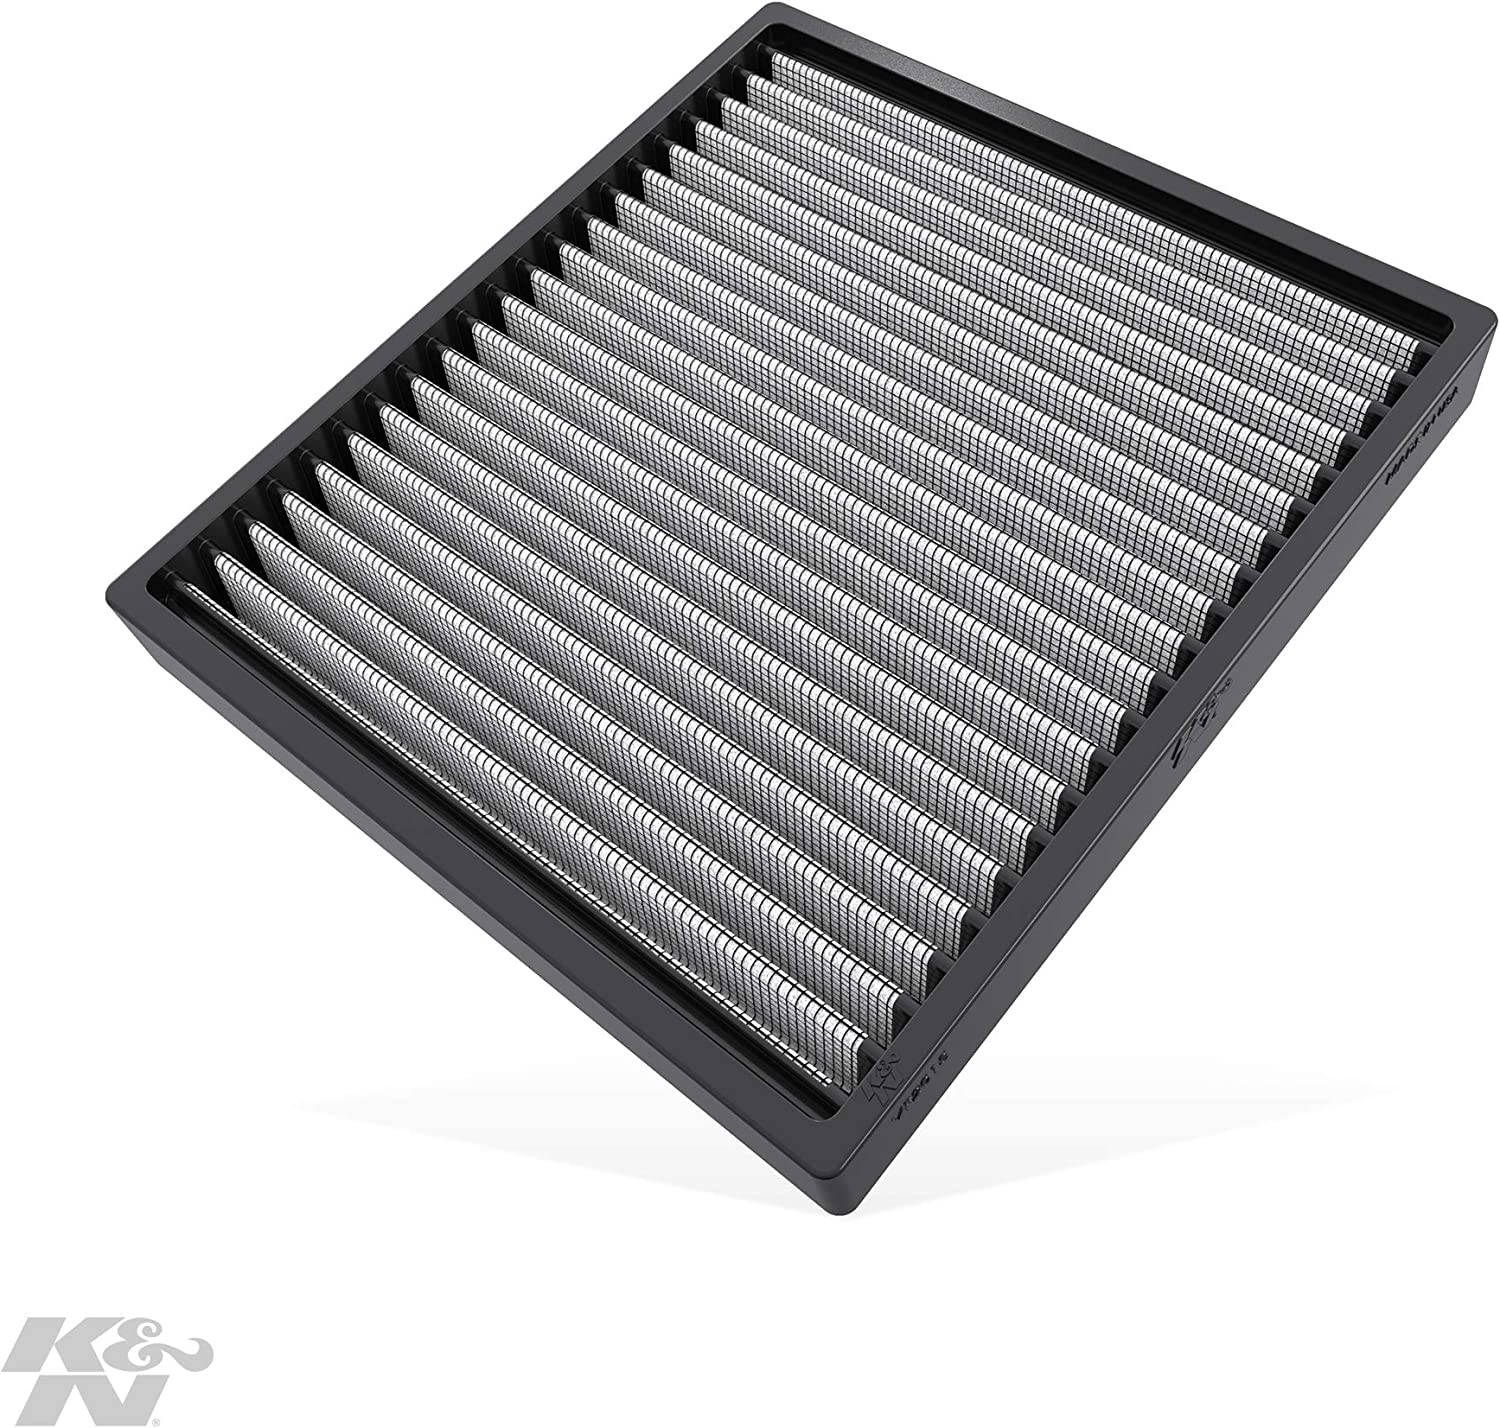 K&N Premium Cabin Air Filter: High Performance, Washable, Lasts for the Life of your Vehicle:Designed For Select 2007-2019 Dodge/Jeep/Chrysler Vehicle Models, VF2013